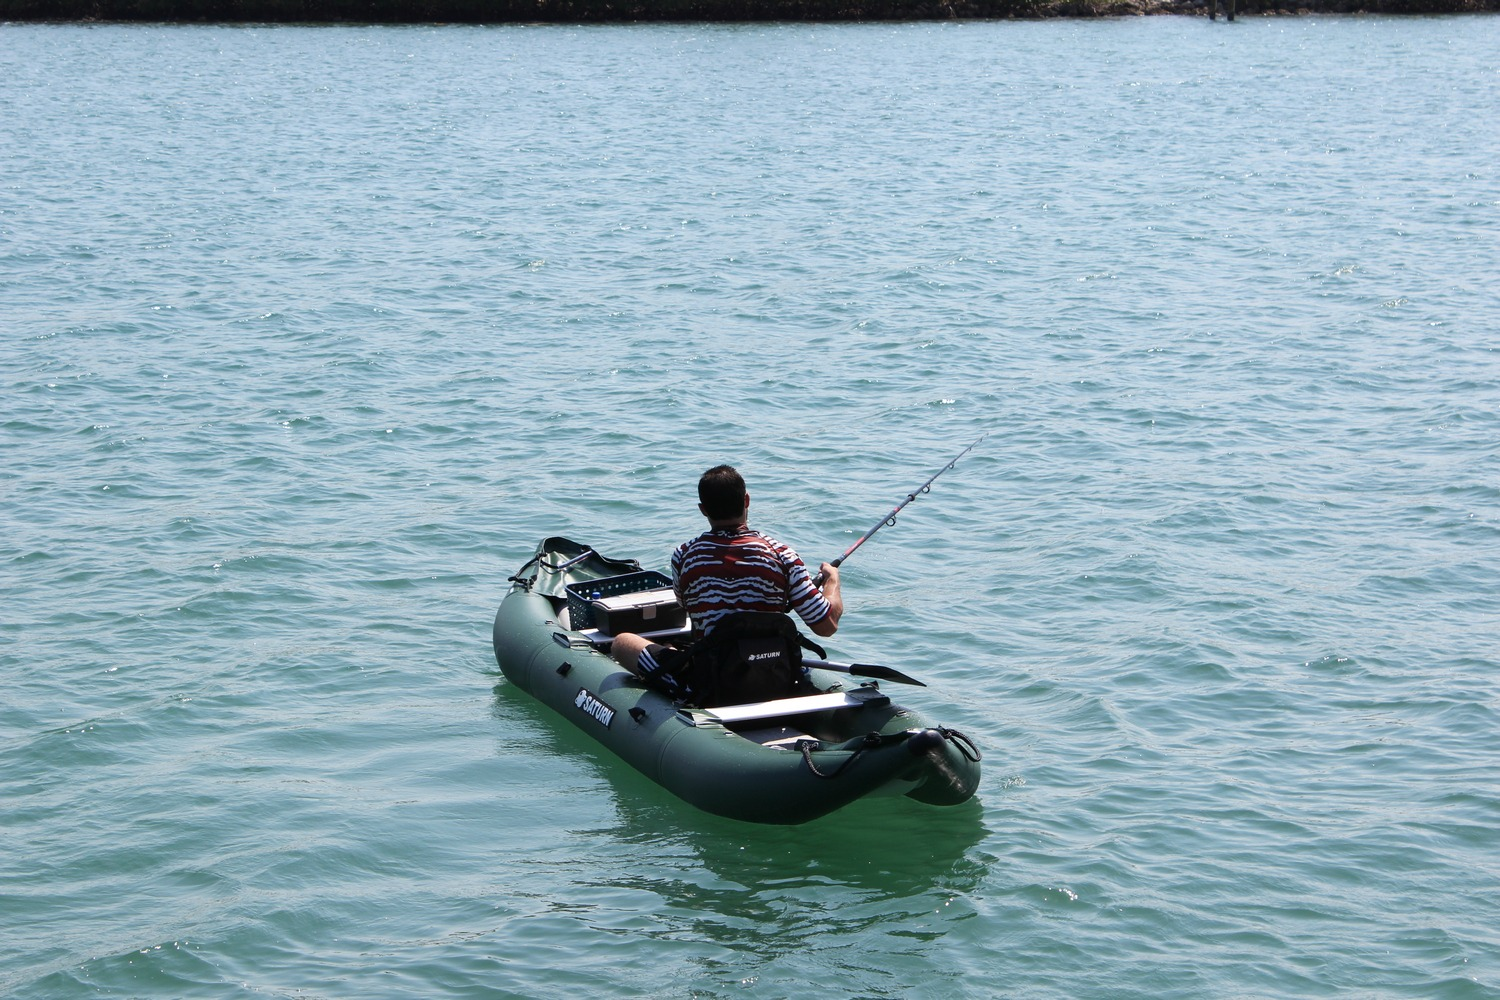 Saturn ocean pro angler inflatable fishing kayaks for Fishing from a kayak